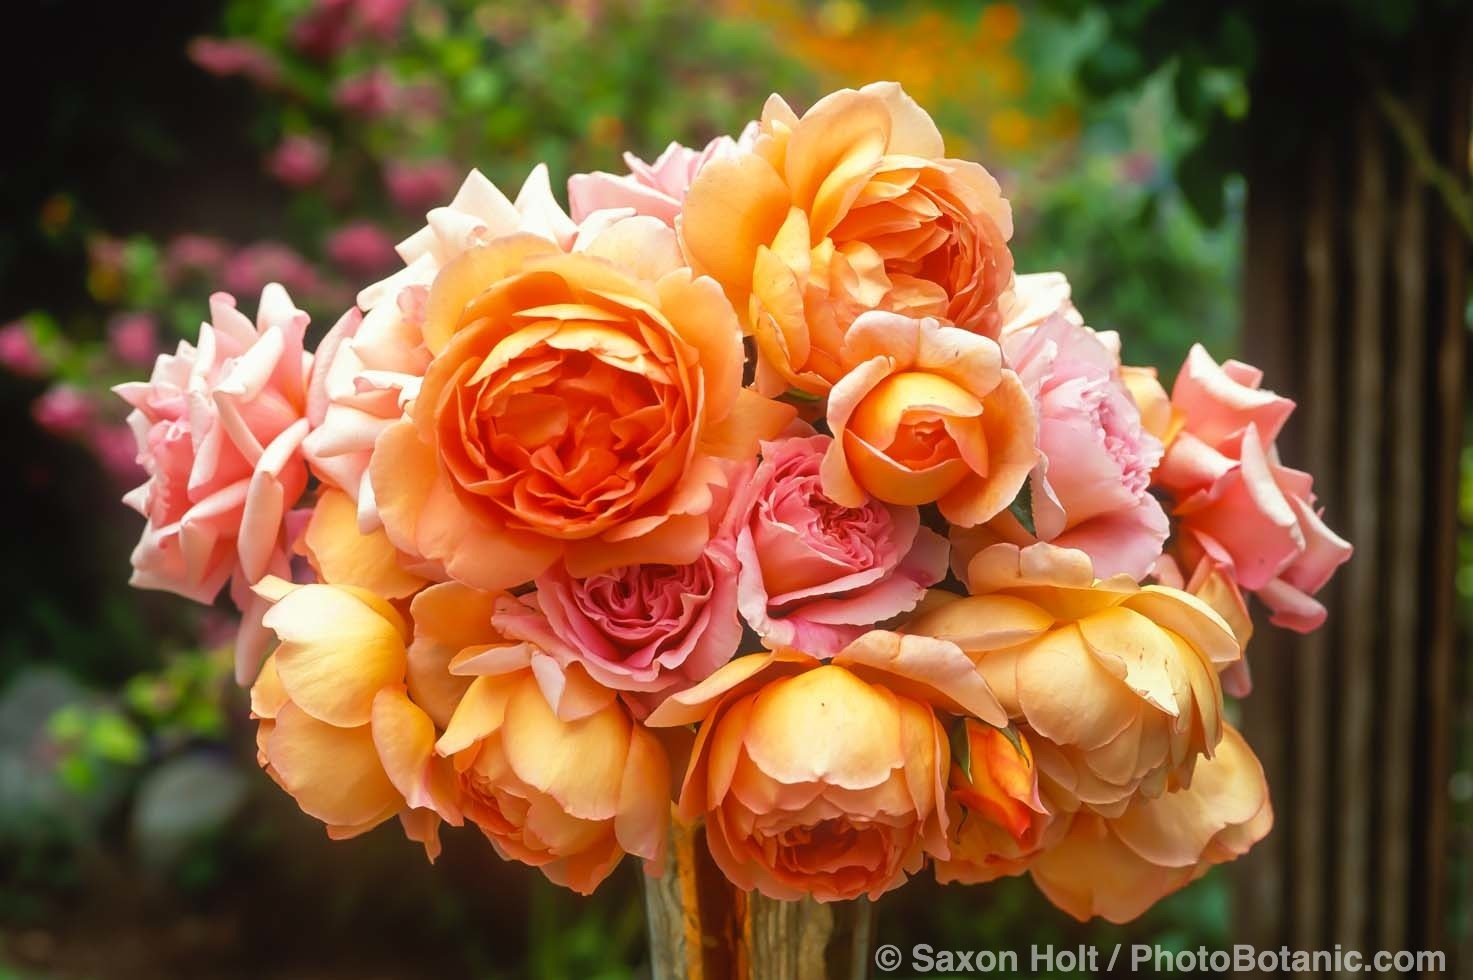 Rose bouquet, floral arrangement outdoors in Sally Roberston garden with yellow 'Pat Austin' and 'Distant Drums'